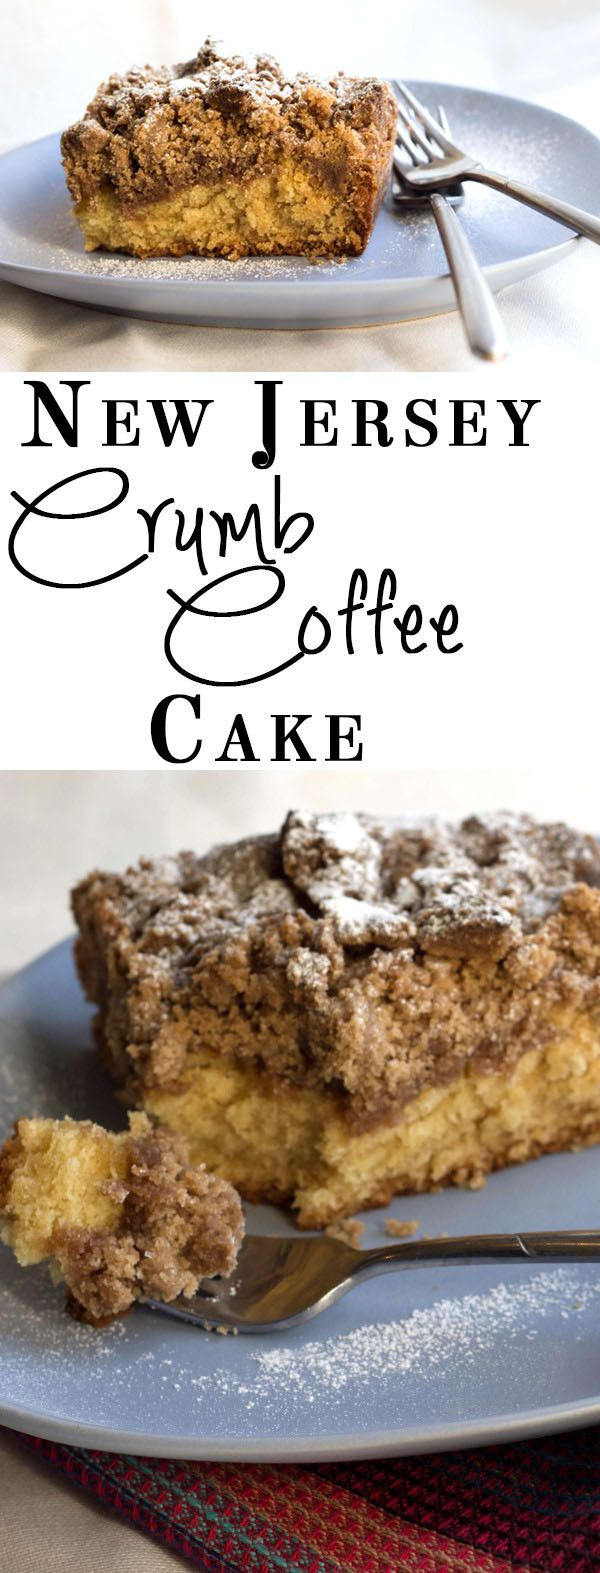 NJ Crumb Coffee Cake - A moist and delicious cake topped with an extra thick crumb topping - truly indulgent!